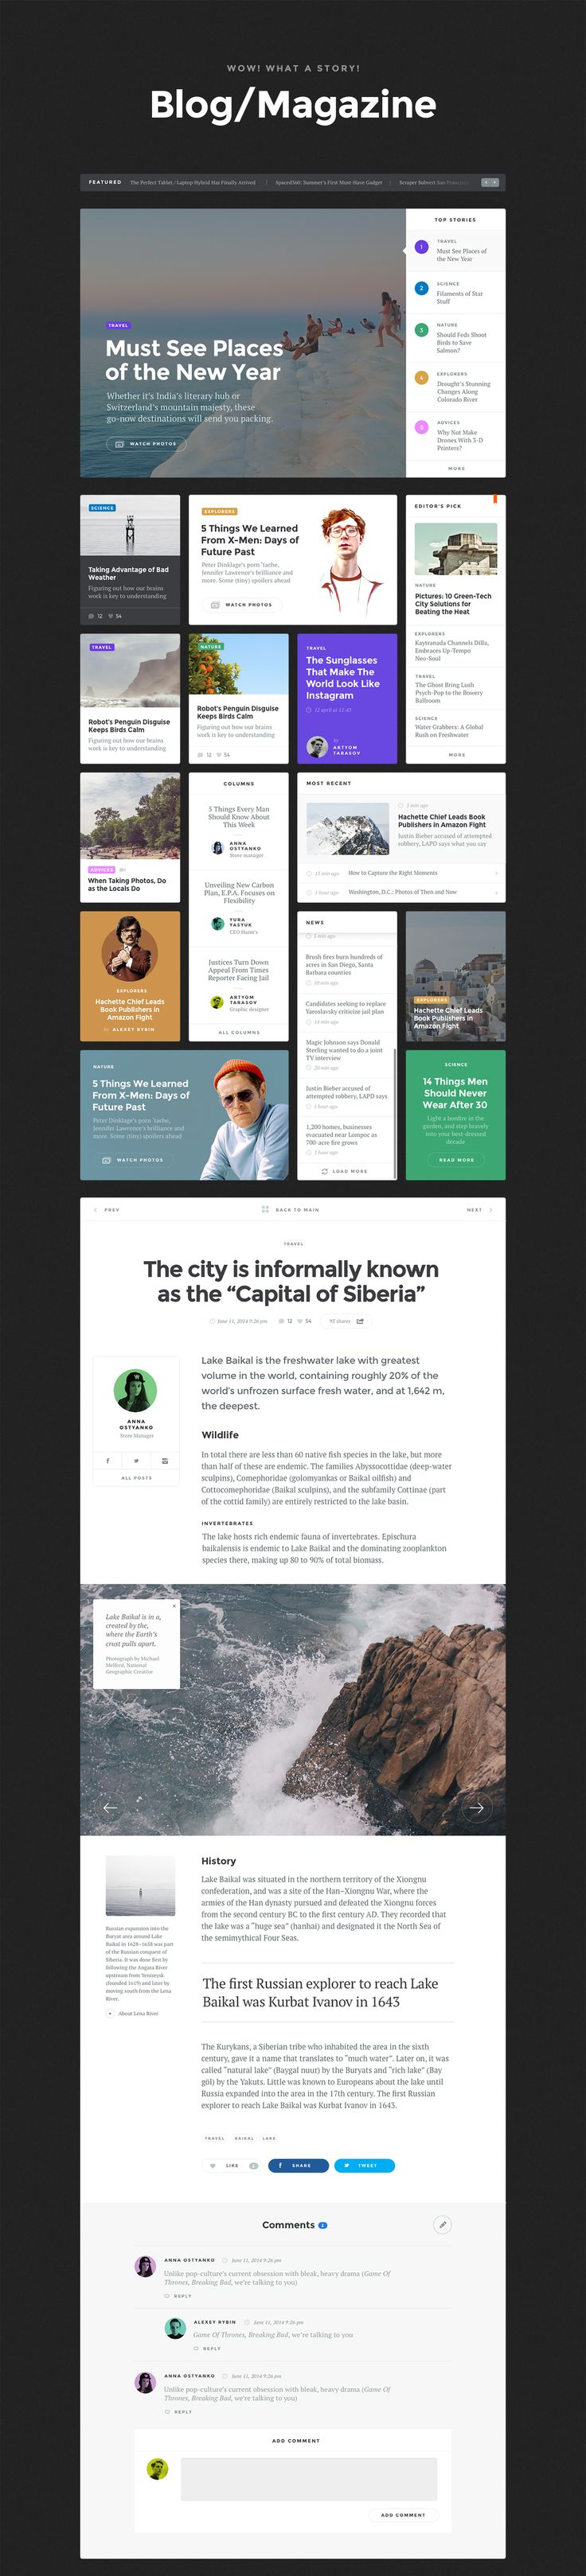 Baikal UI kit – blog/magazine